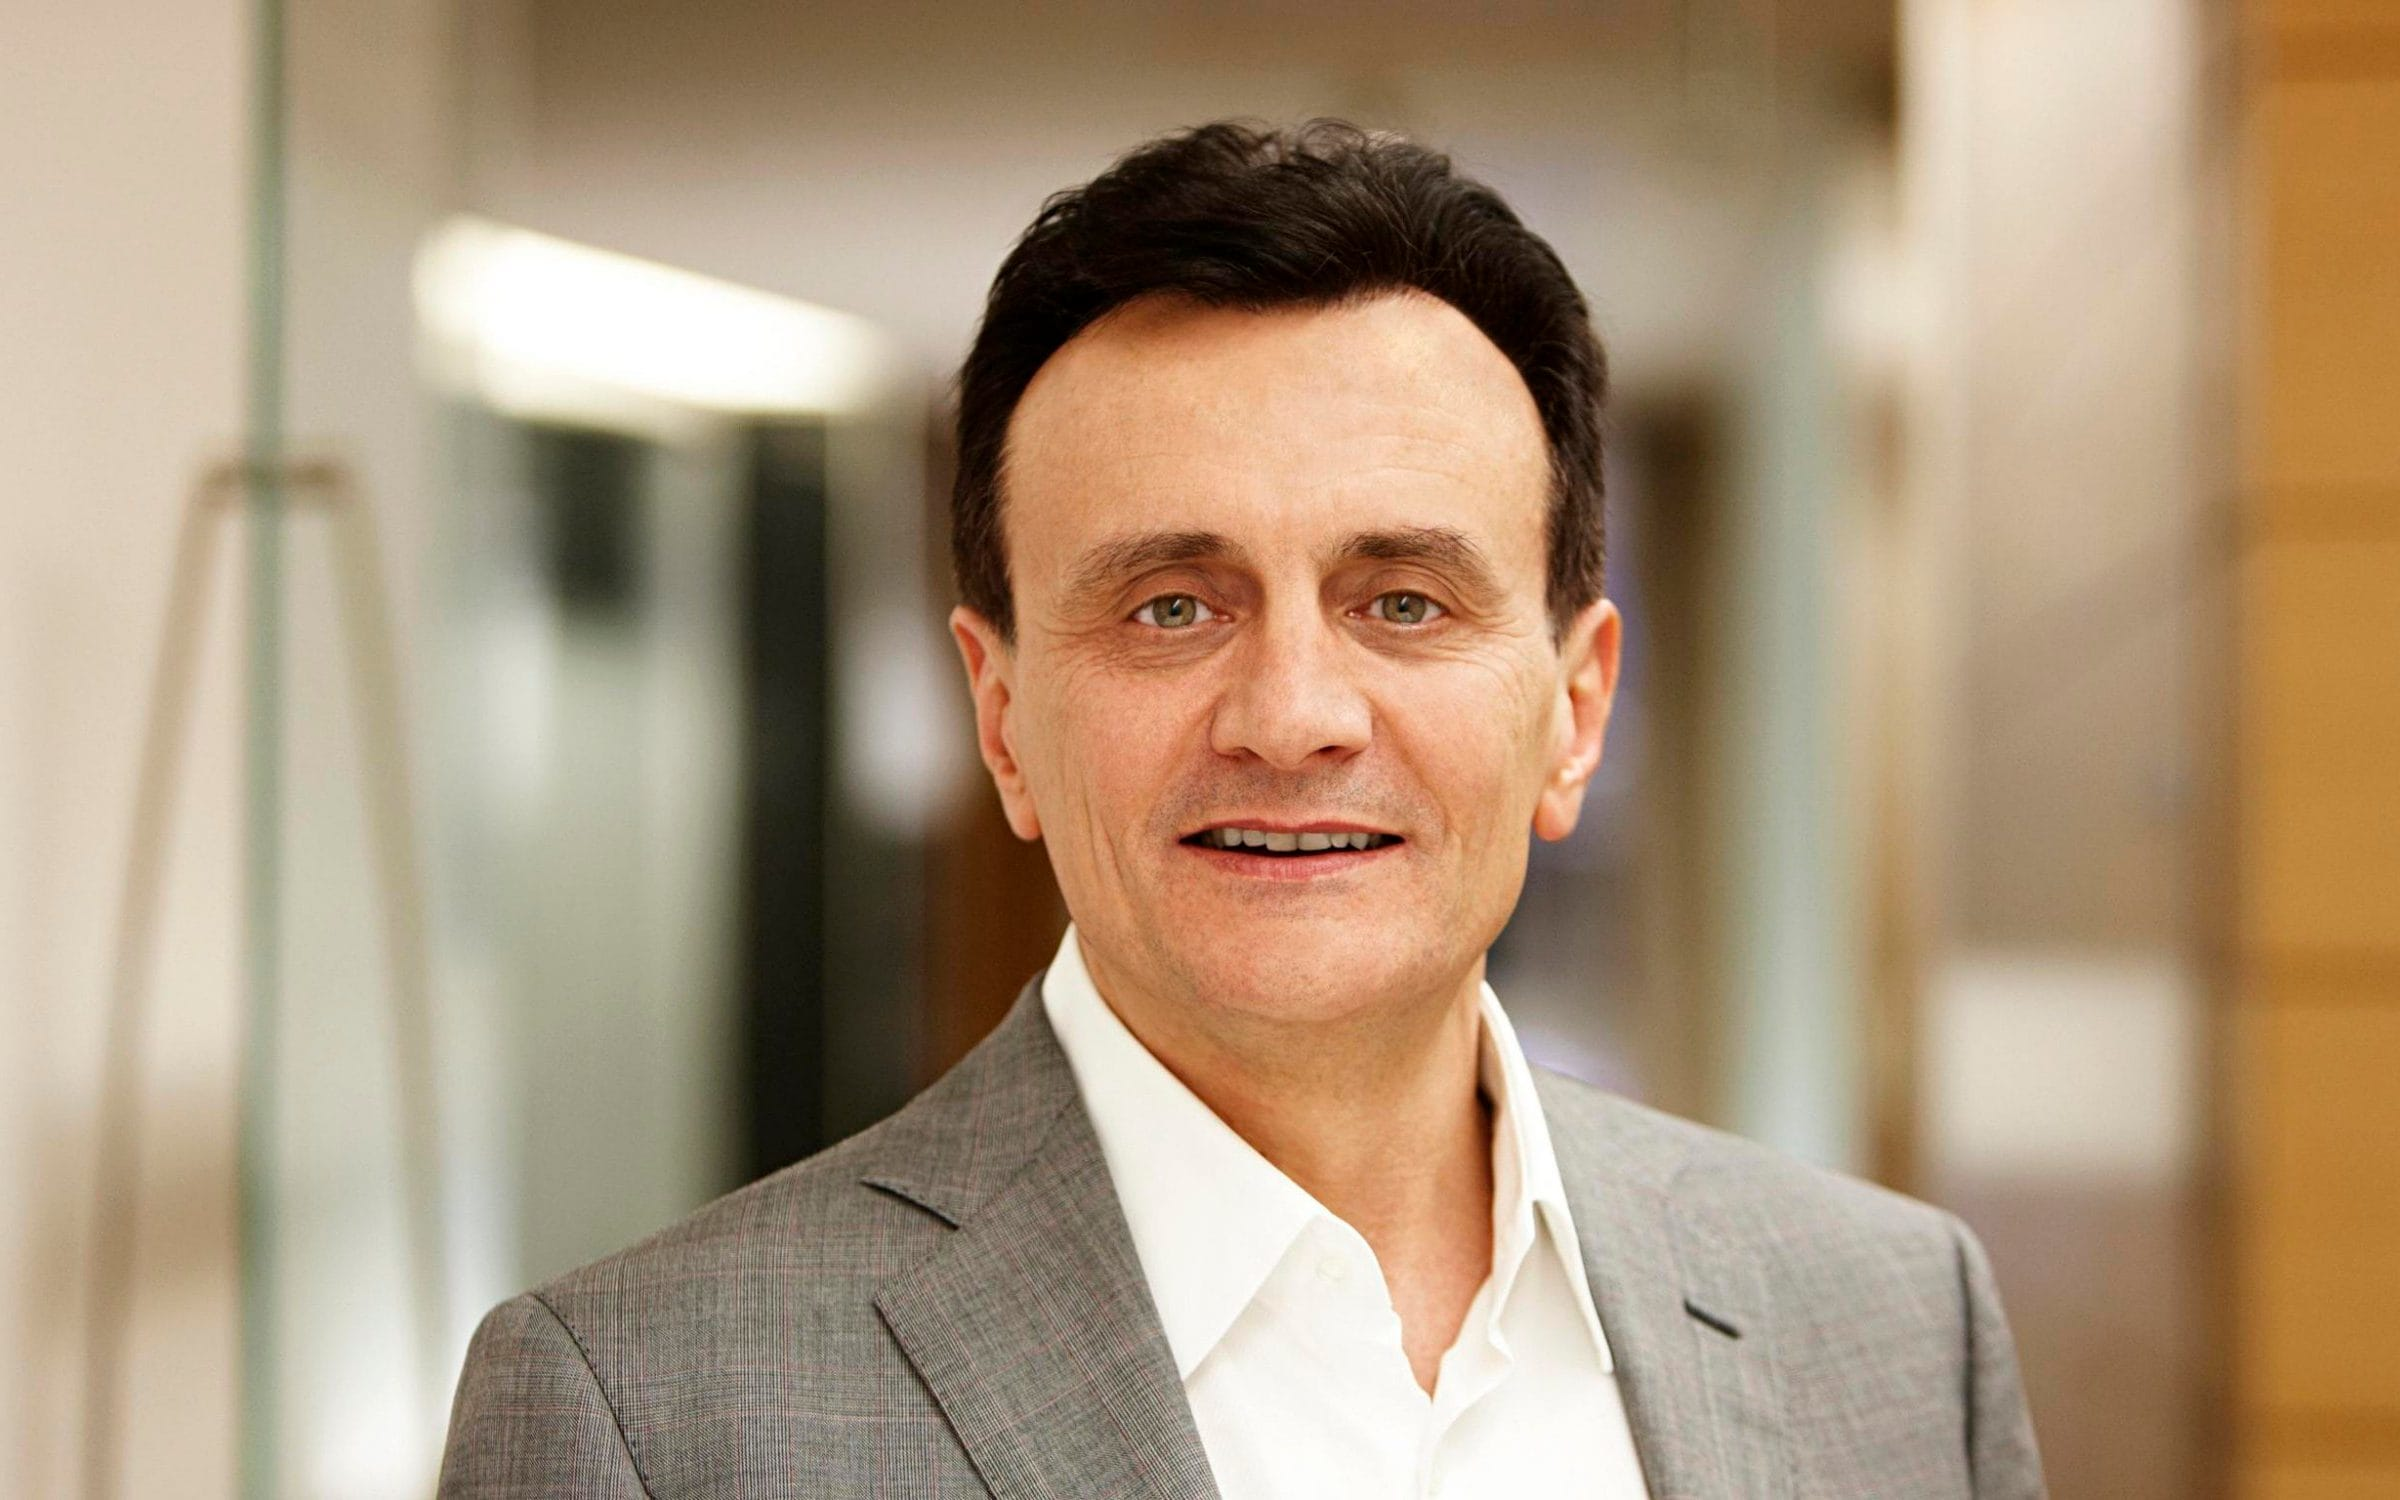 Pascal Soriot 'here today' after bad trial results wipe £10bn from AstraZeneca value